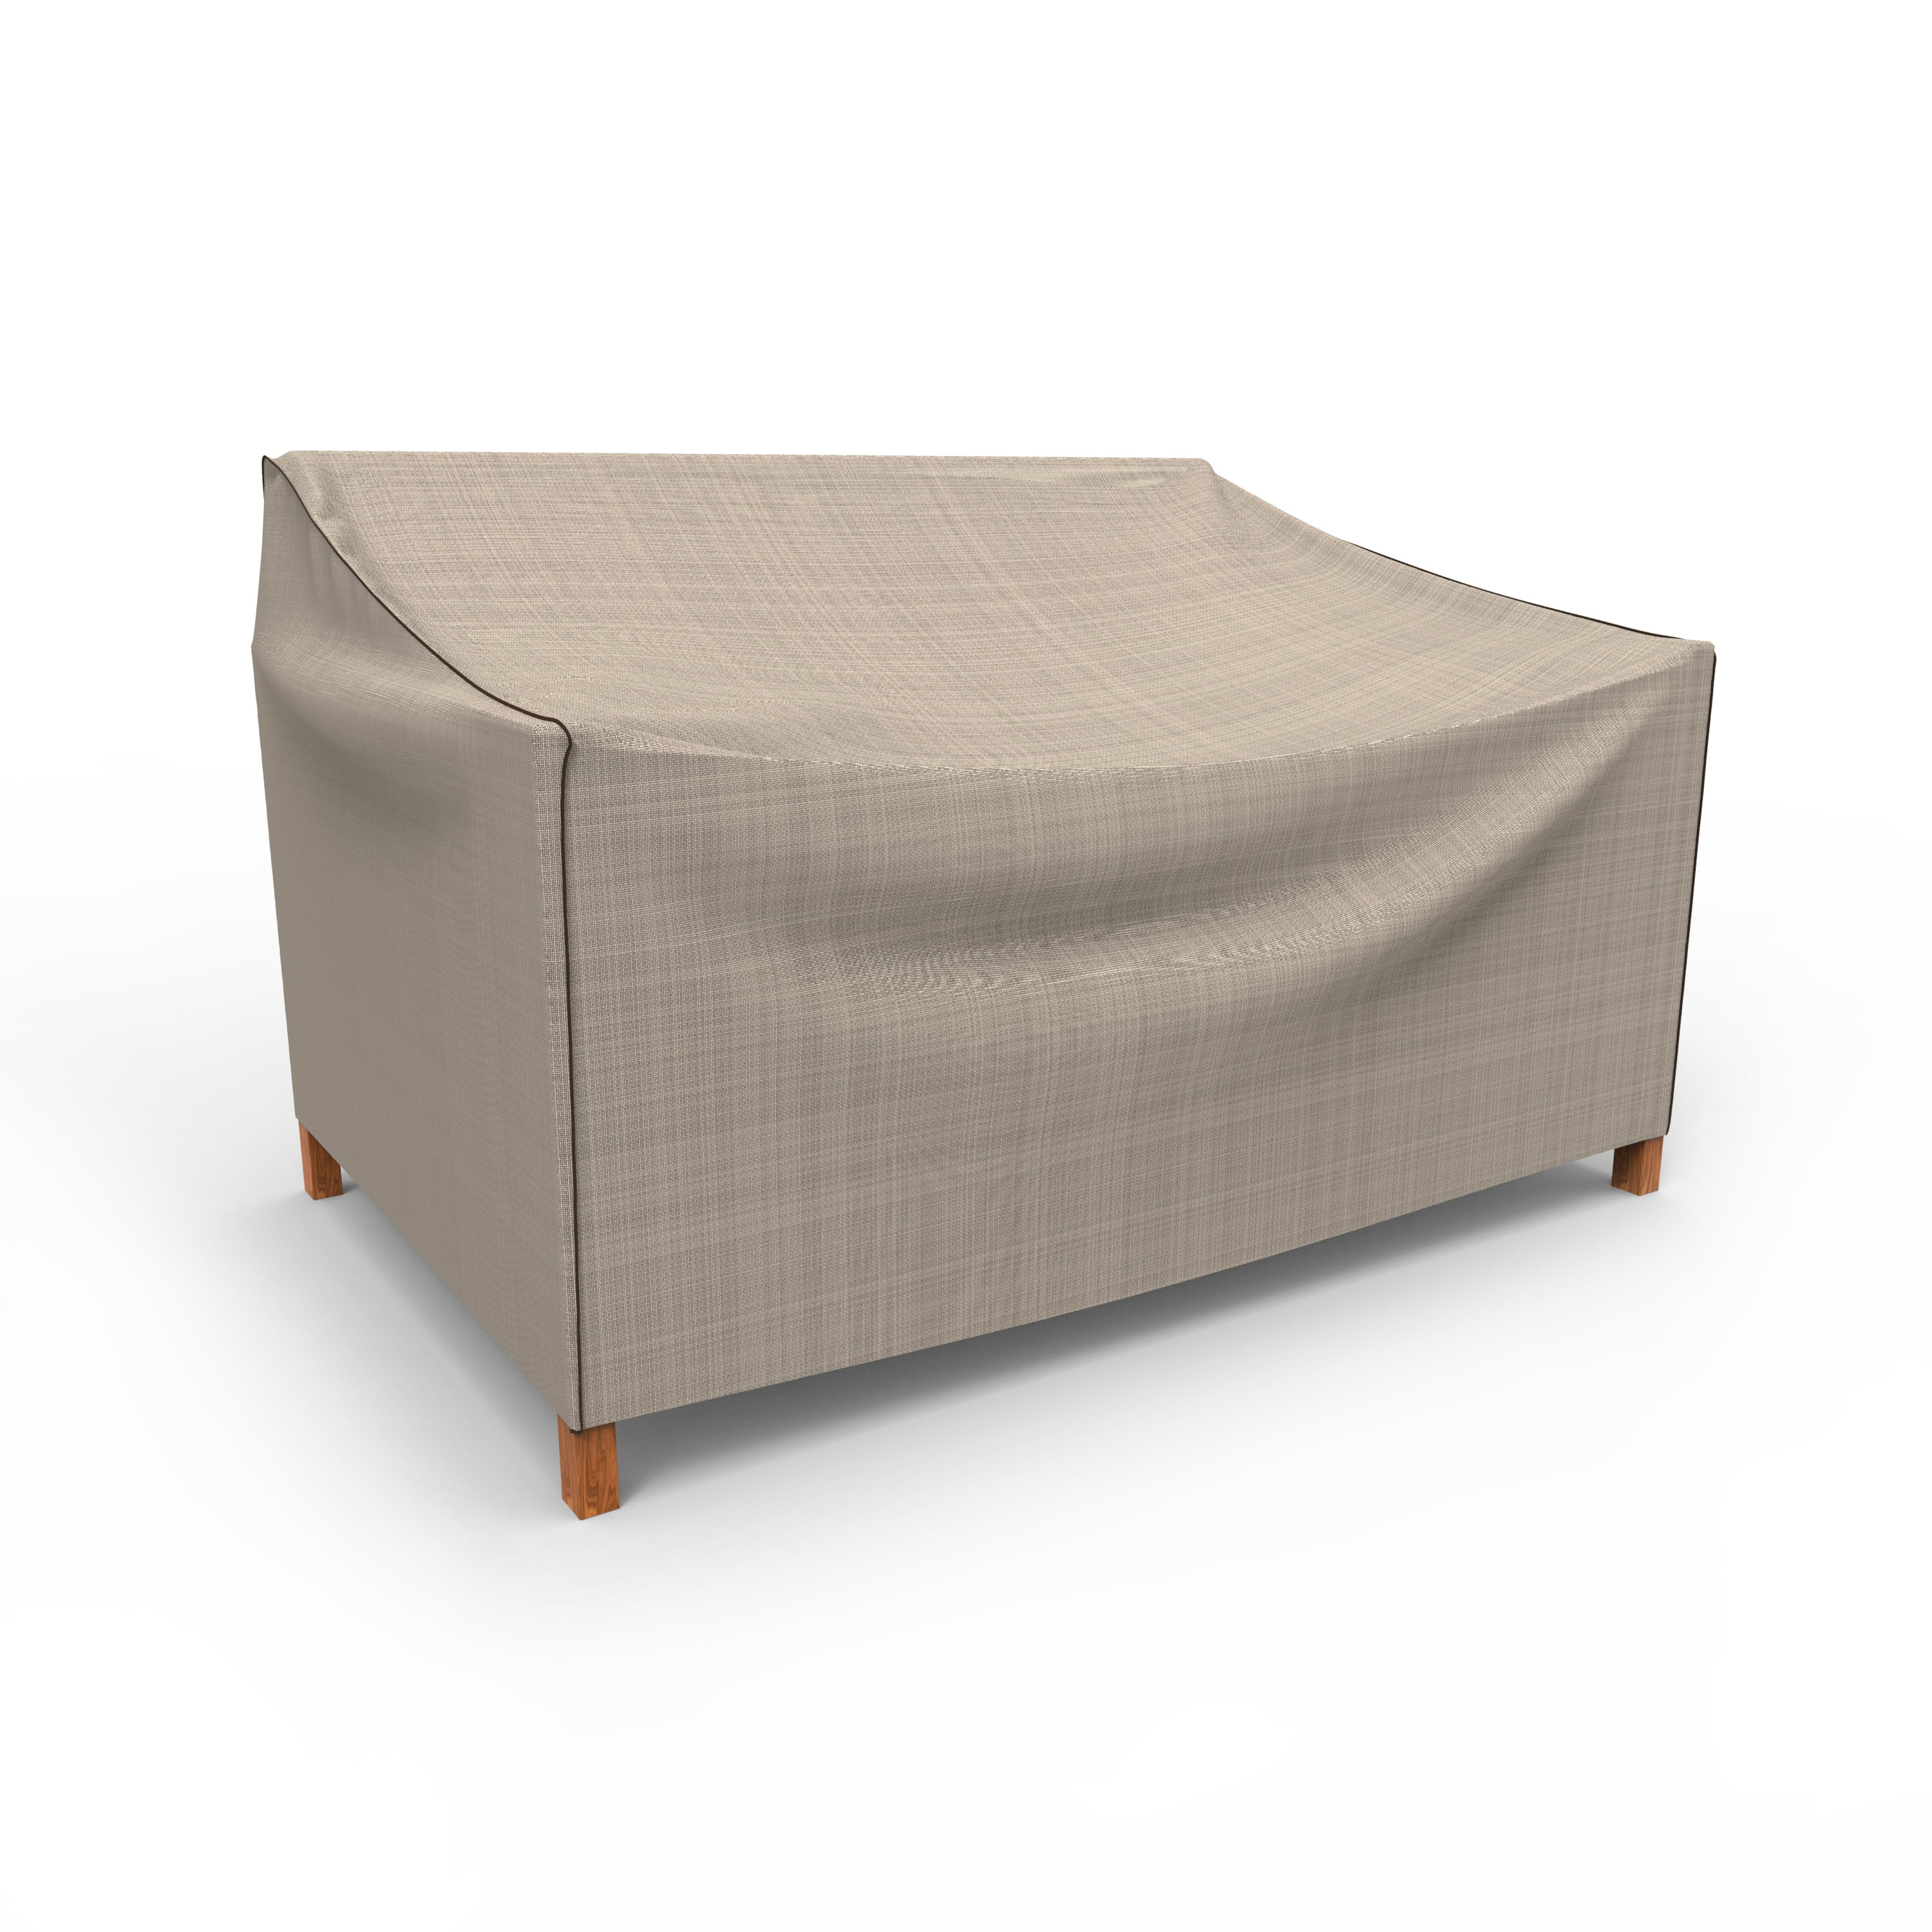 Budge English Garden Patio Sofa Covers Durable and Waterproof